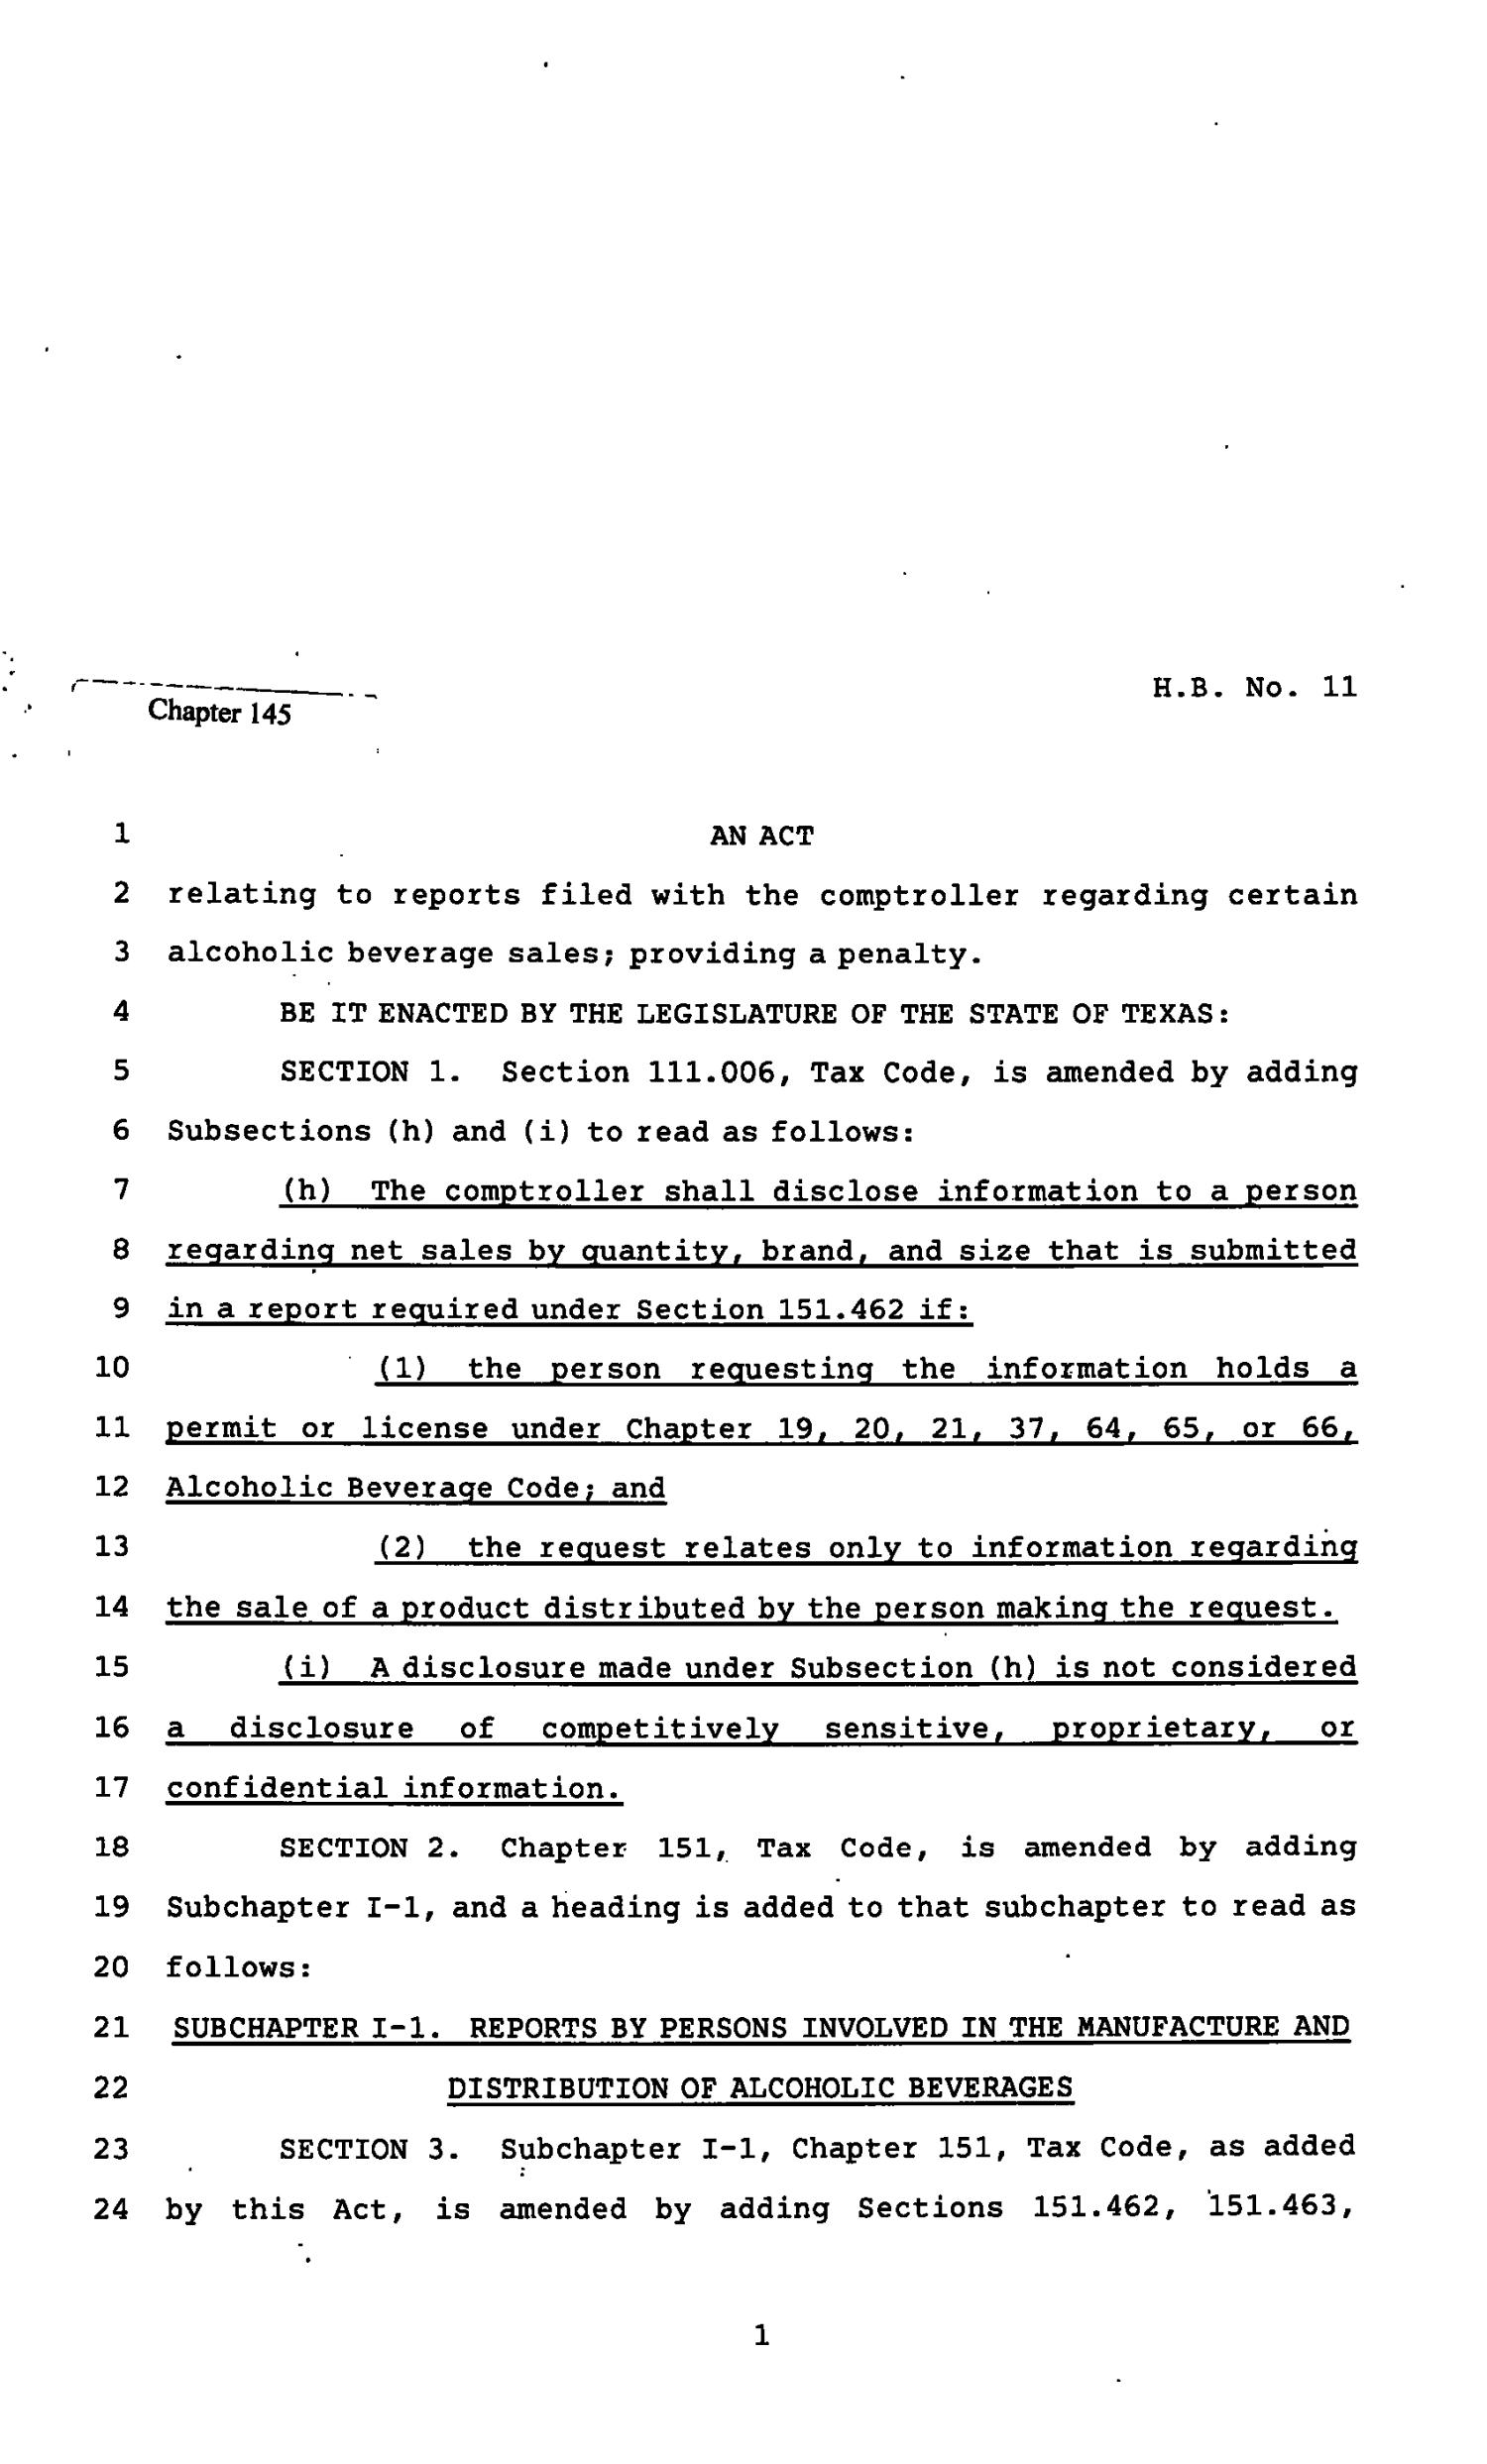 82nd Texas Legislature, Regular Session, House BIll 11, Chapter 145                                                                                                      [Sequence #]: 1 of 10